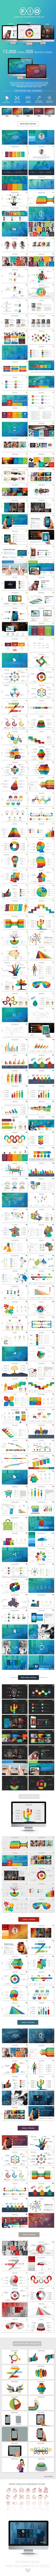 Fio - Complete Powerpoint Template | Download: http://graphicriver.net/item/fio-complete-powerpoint-template/11084953?ref=ksioks